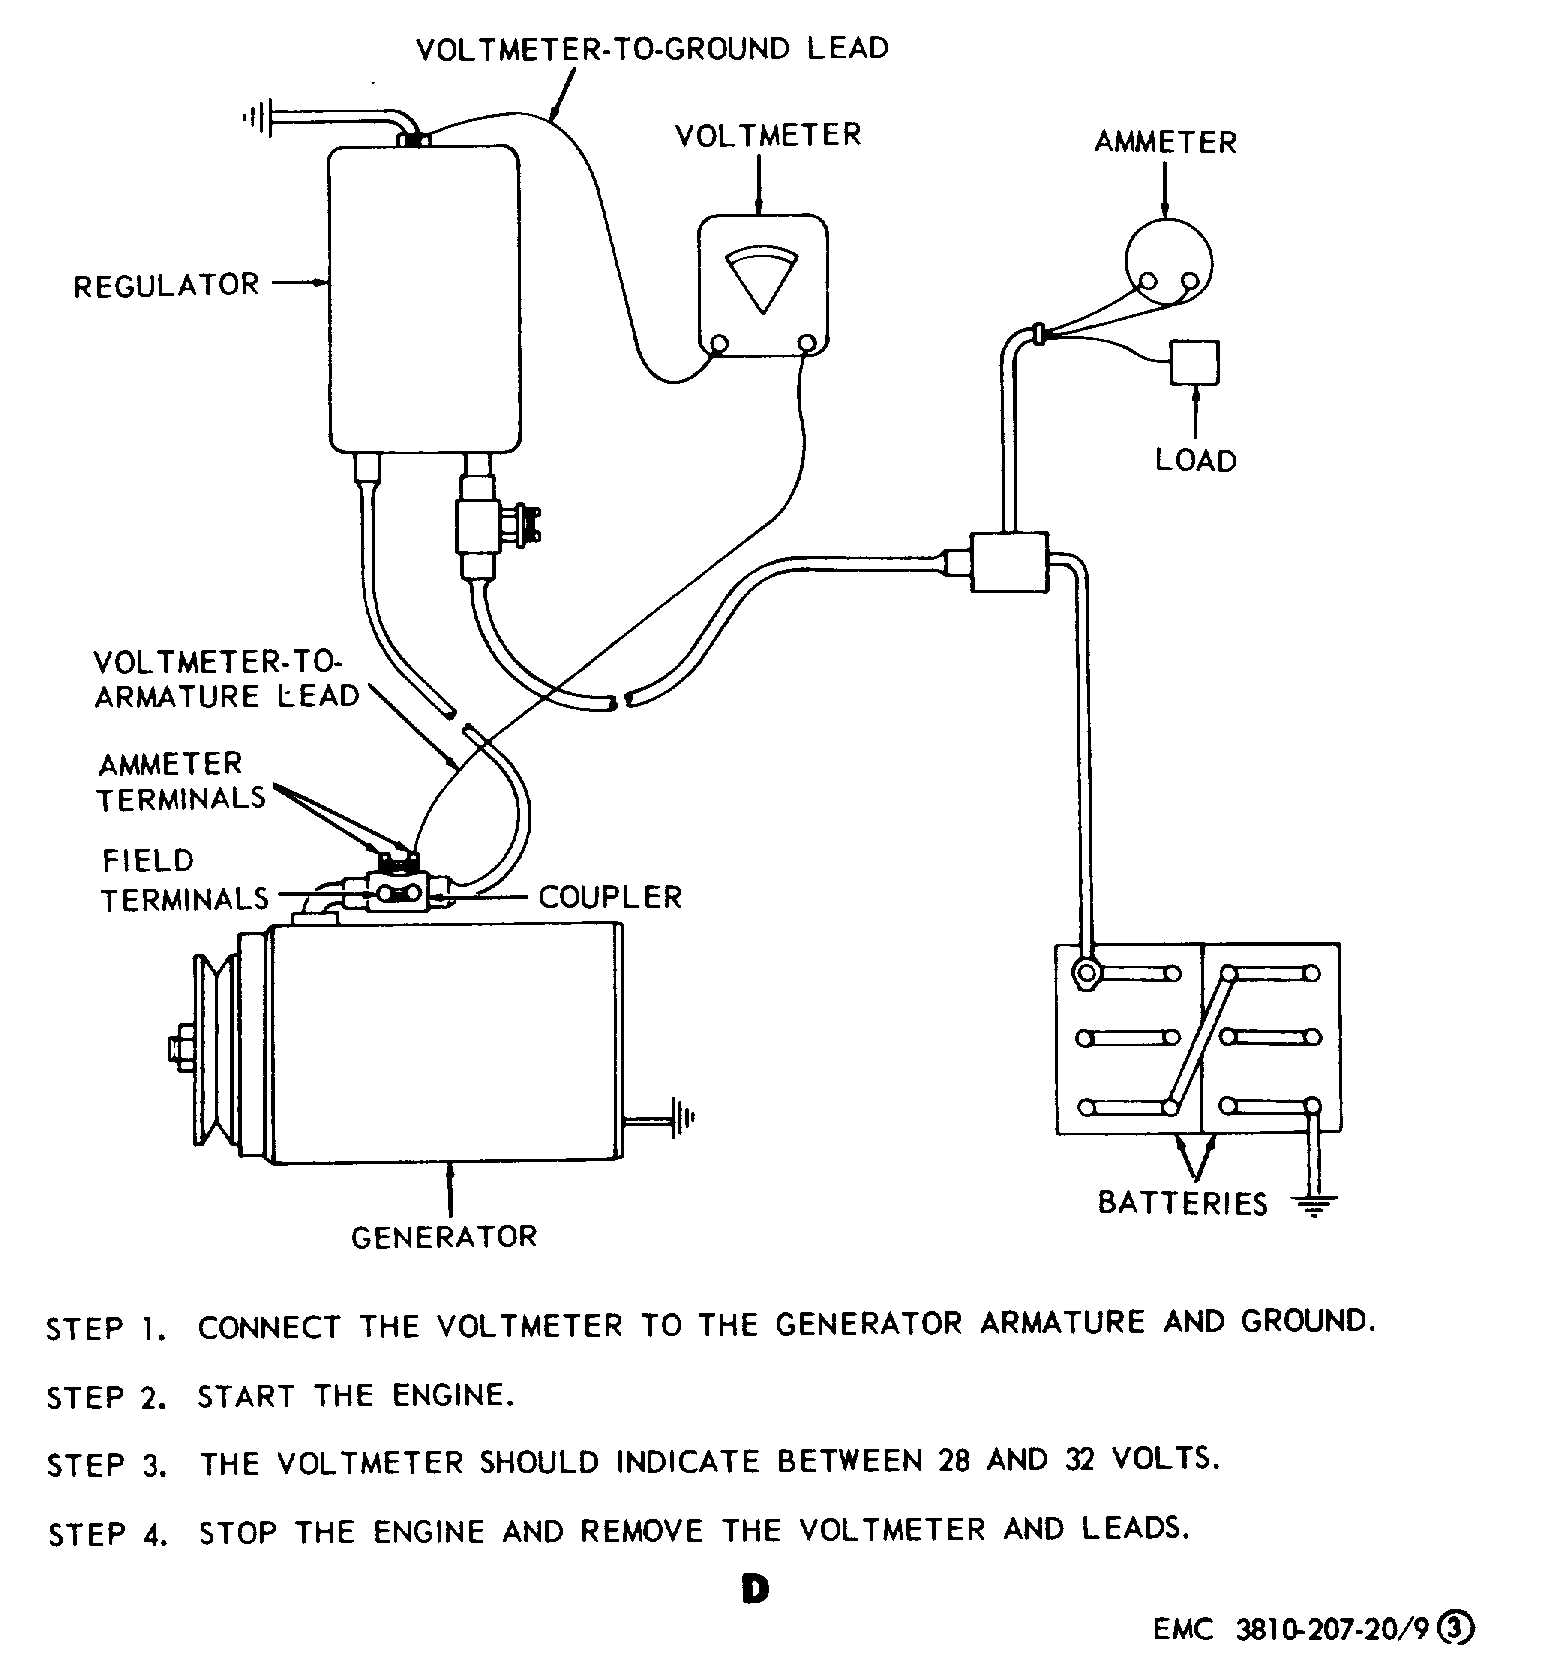 generator wiring diagram 64 mustang with 12 Volt Generator Voltage Regulator Wiring Diagram on 495754 3 Speed Fan moreover Forum posts furthermore T11483236 Stuck 350 in 1985 chevy s10 now wont in addition 1965 Ford F100 Dash Gauges Wiring furthermore 1957 20Chevy 20Index.